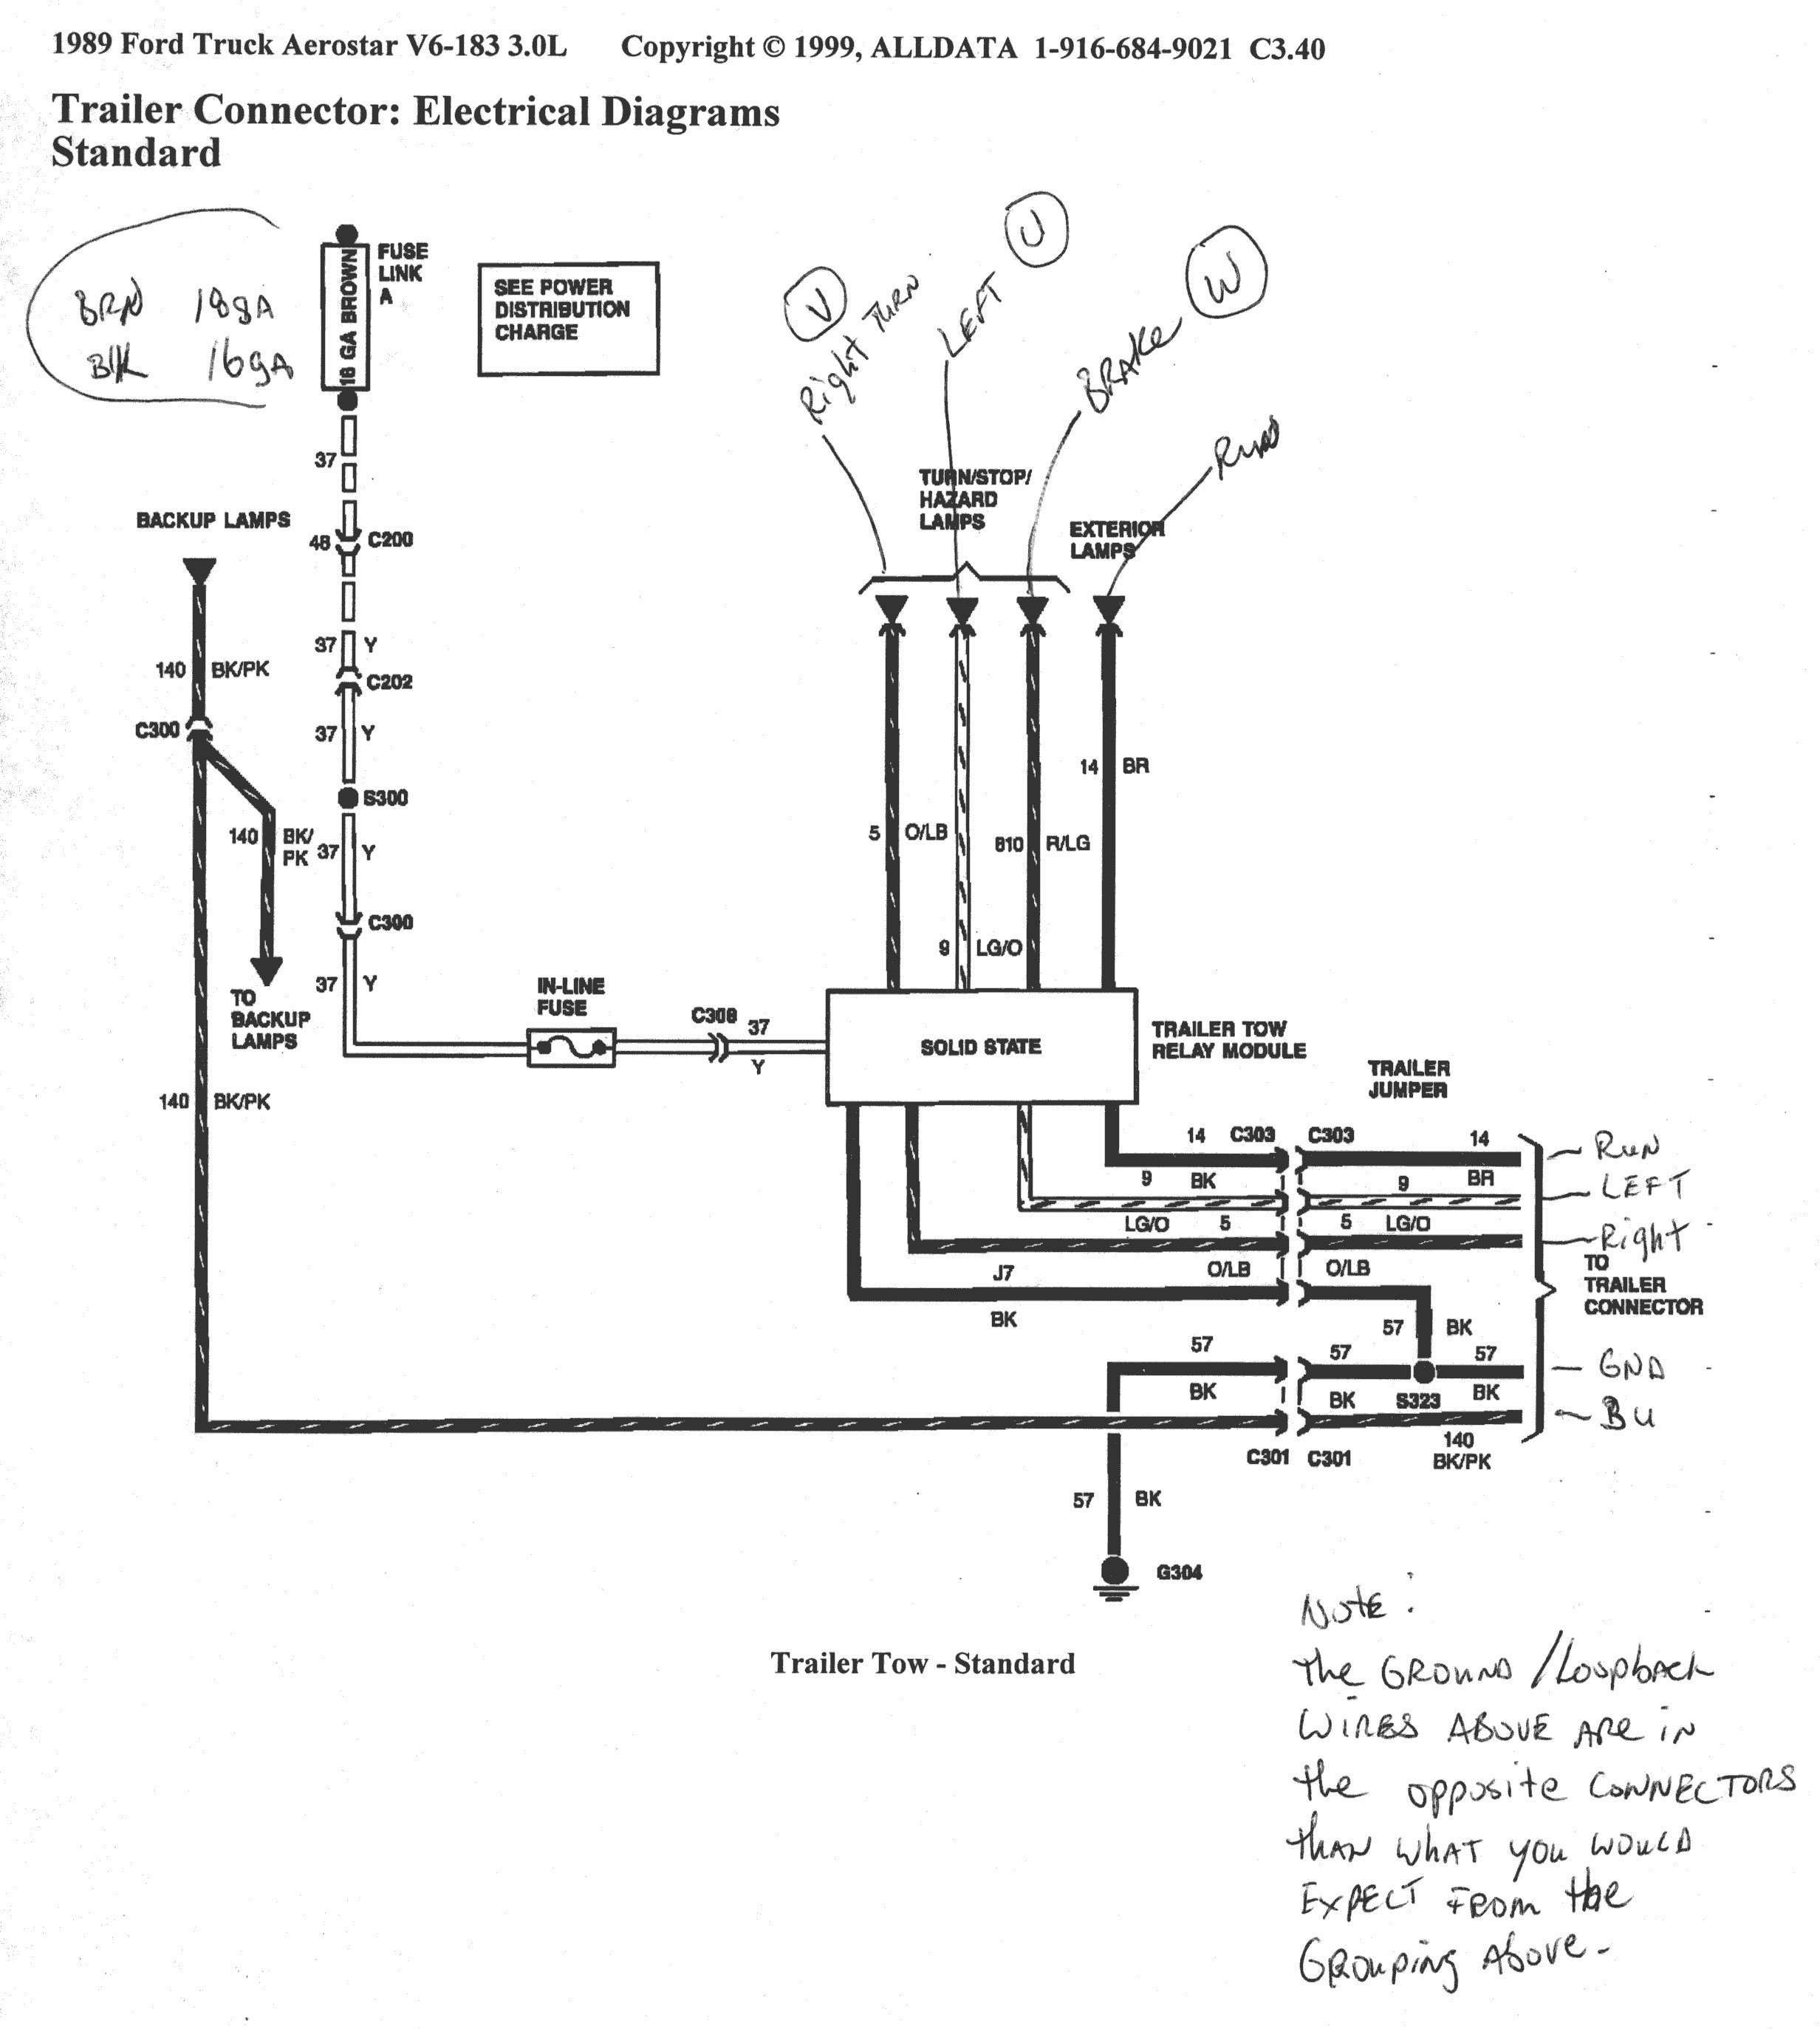 1997 f 250 sd transmission wiring harness diagram wiring diagram de1997 ford f 350 trailer wiring harness diagram wiring diagram 1997 f 250 sd transmission wiring harness diagram